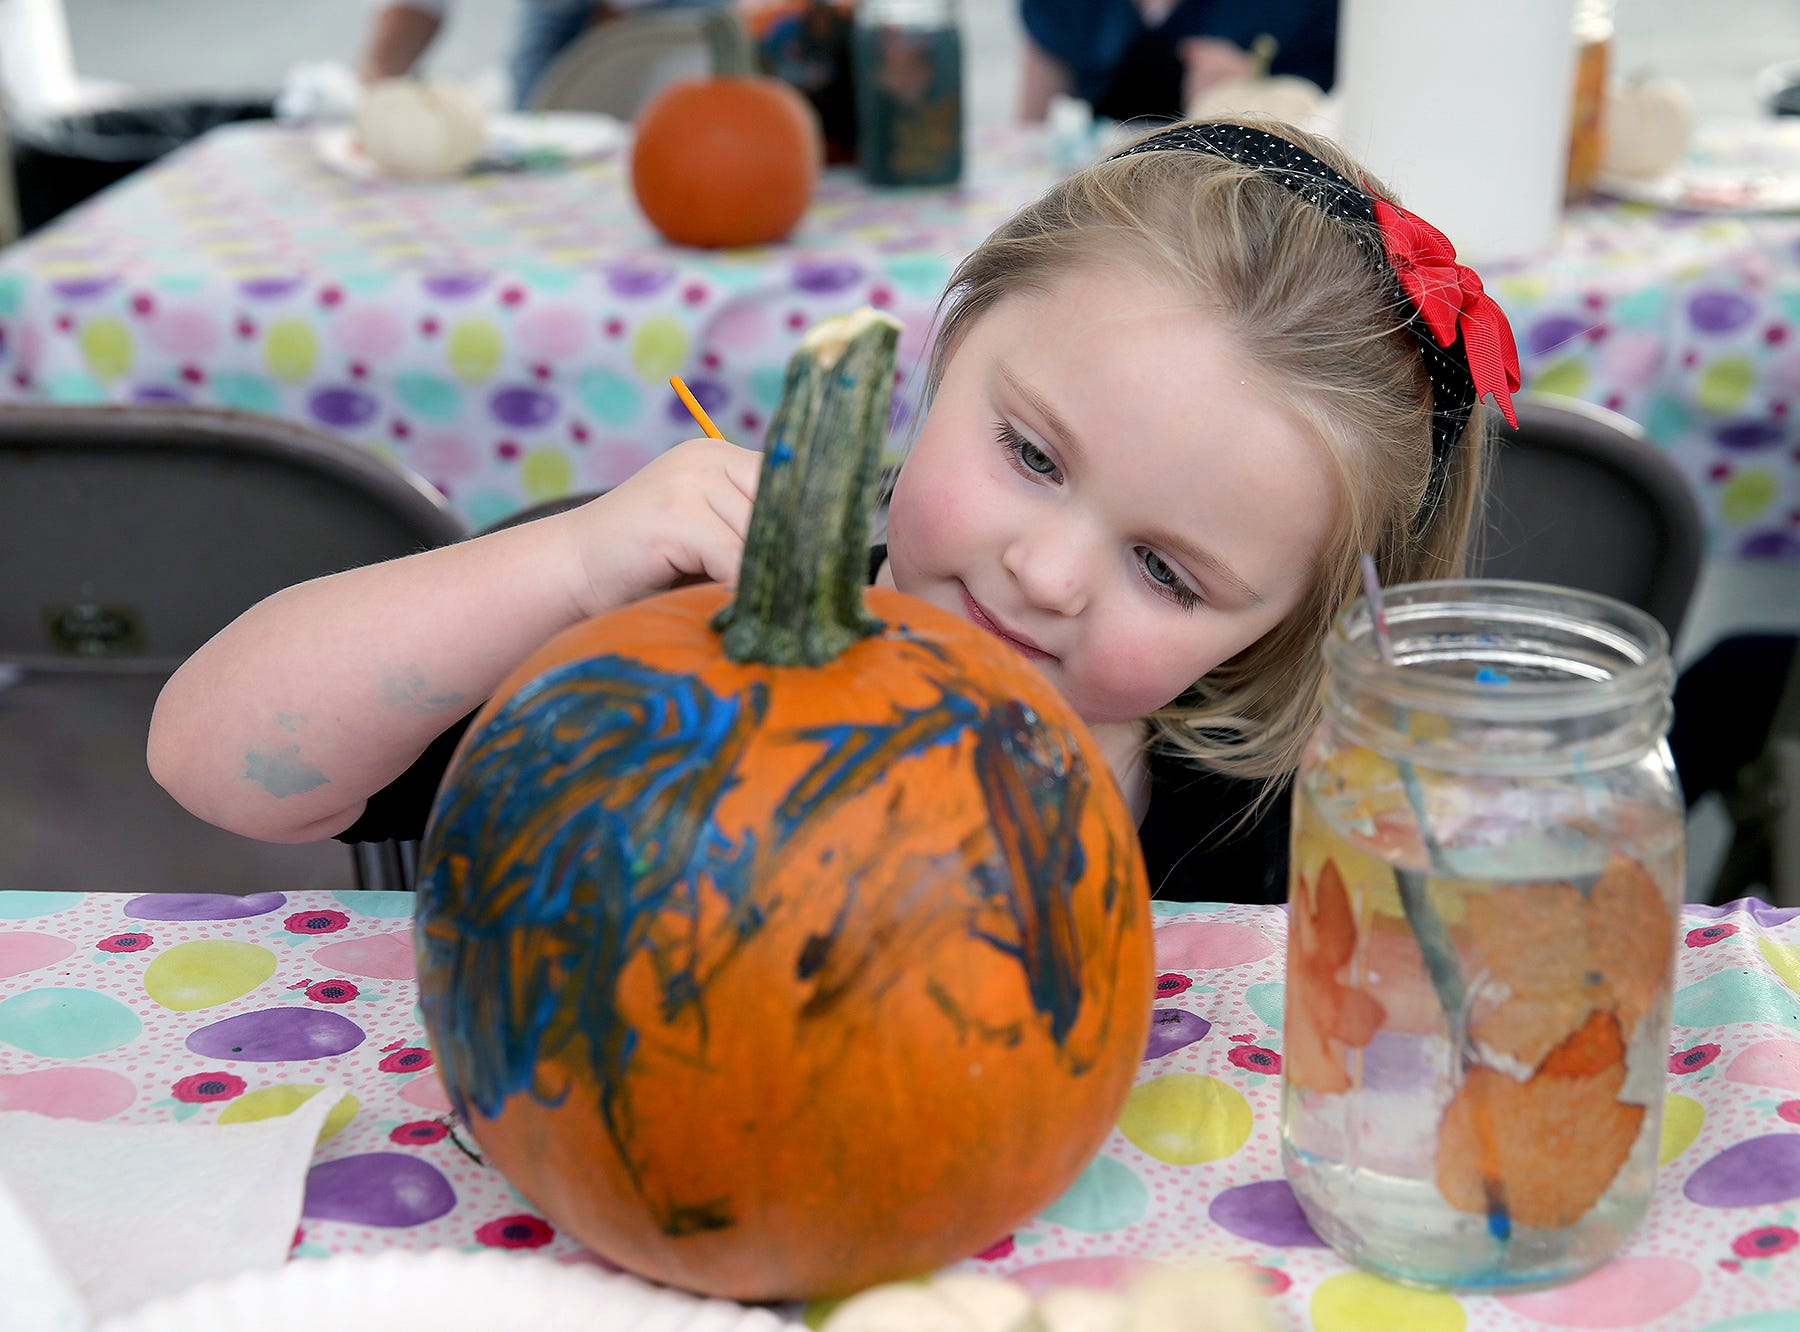 Iris Eckstrom, 4, of Bremerton paints a pumpkin at the Central Kitsap Farmers Market in Old Town Silverdale on Tuesday, October, 2, 2018.The pumpkins were supplied by Pheasant Fields Farm in Silverdale.